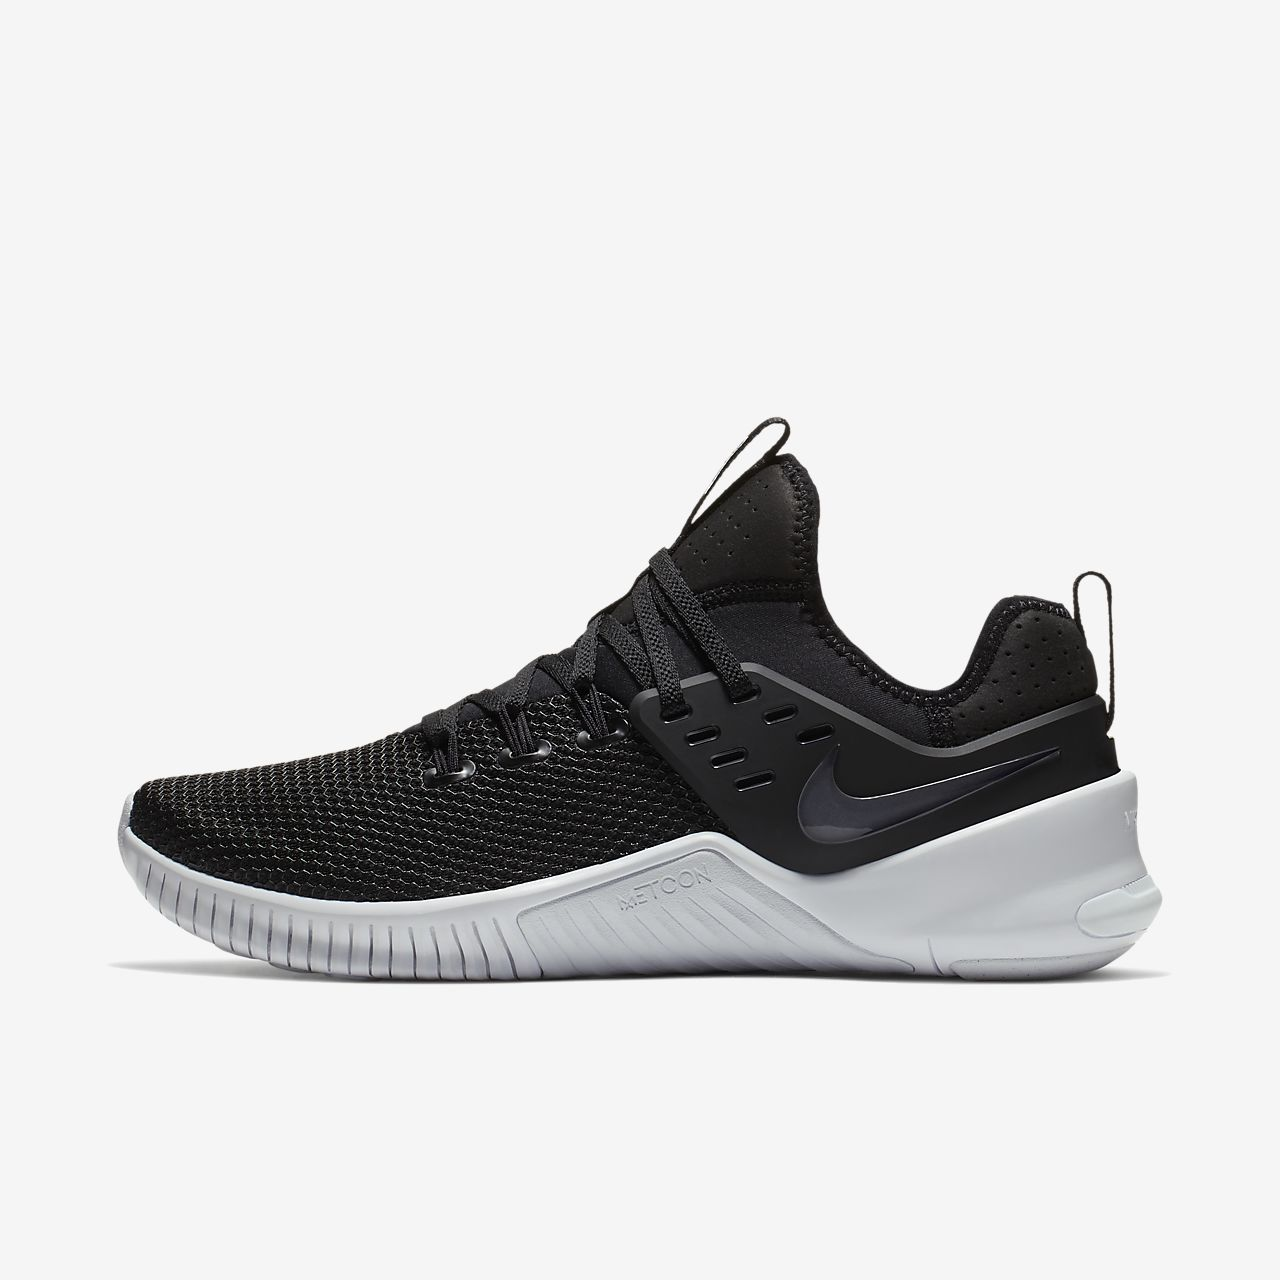 ... Nike Free x Metcon Gym/Cross Training Shoe